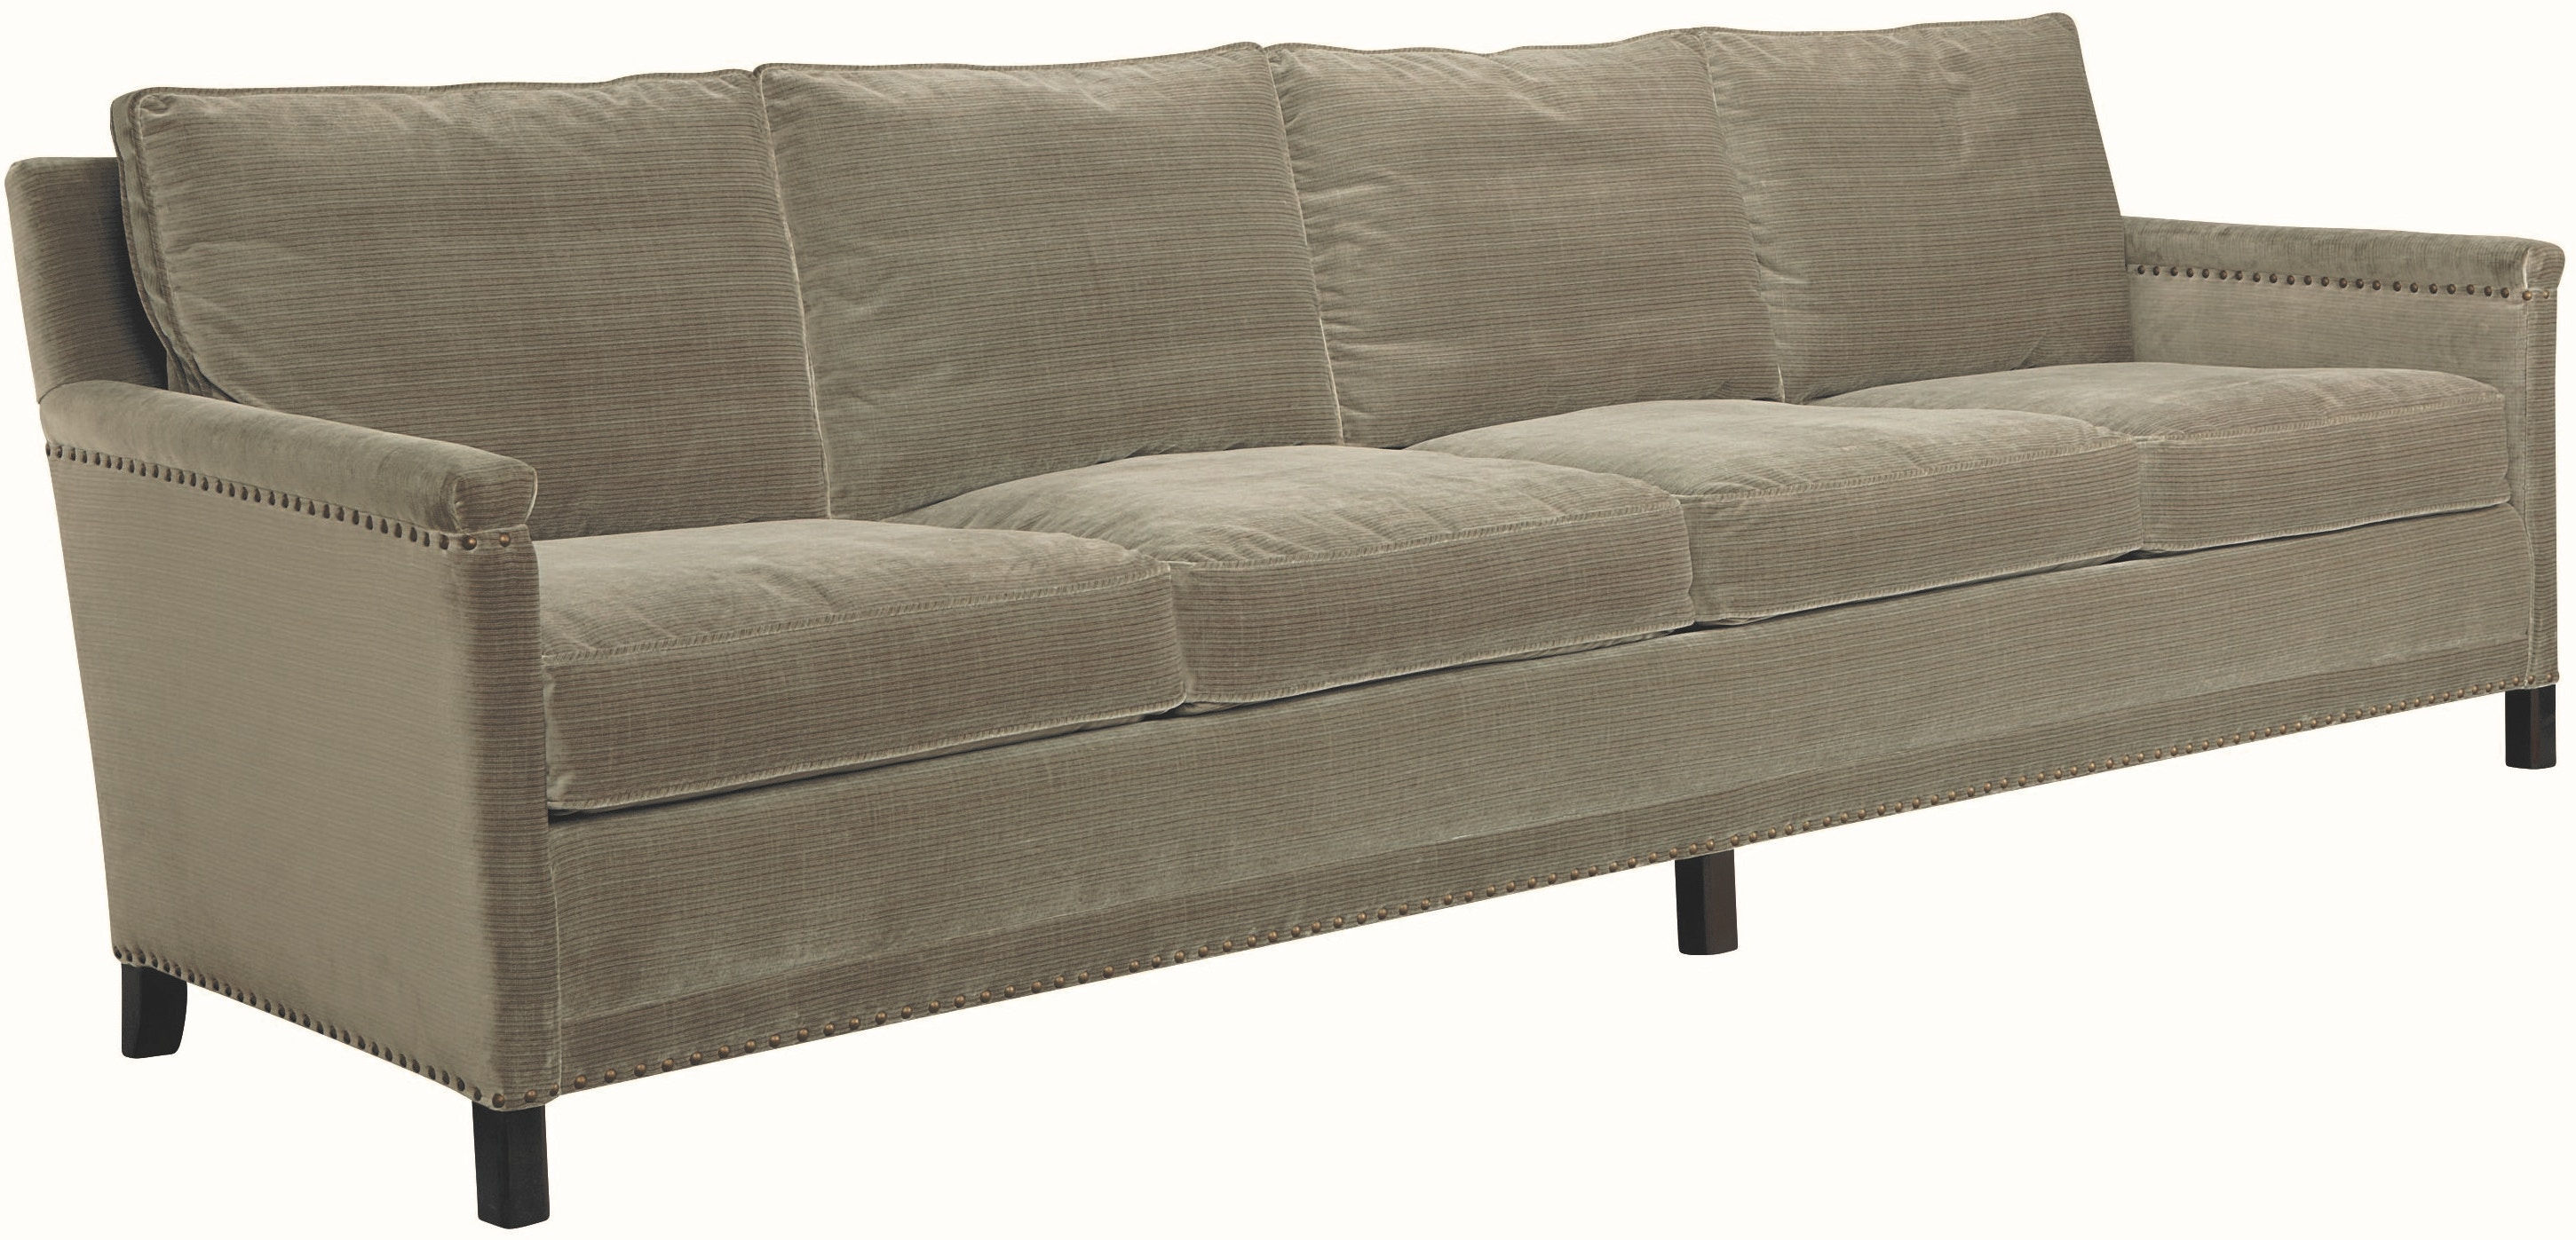 Lee Industries Living Room Extra Long Sofa 1935 44 Toms